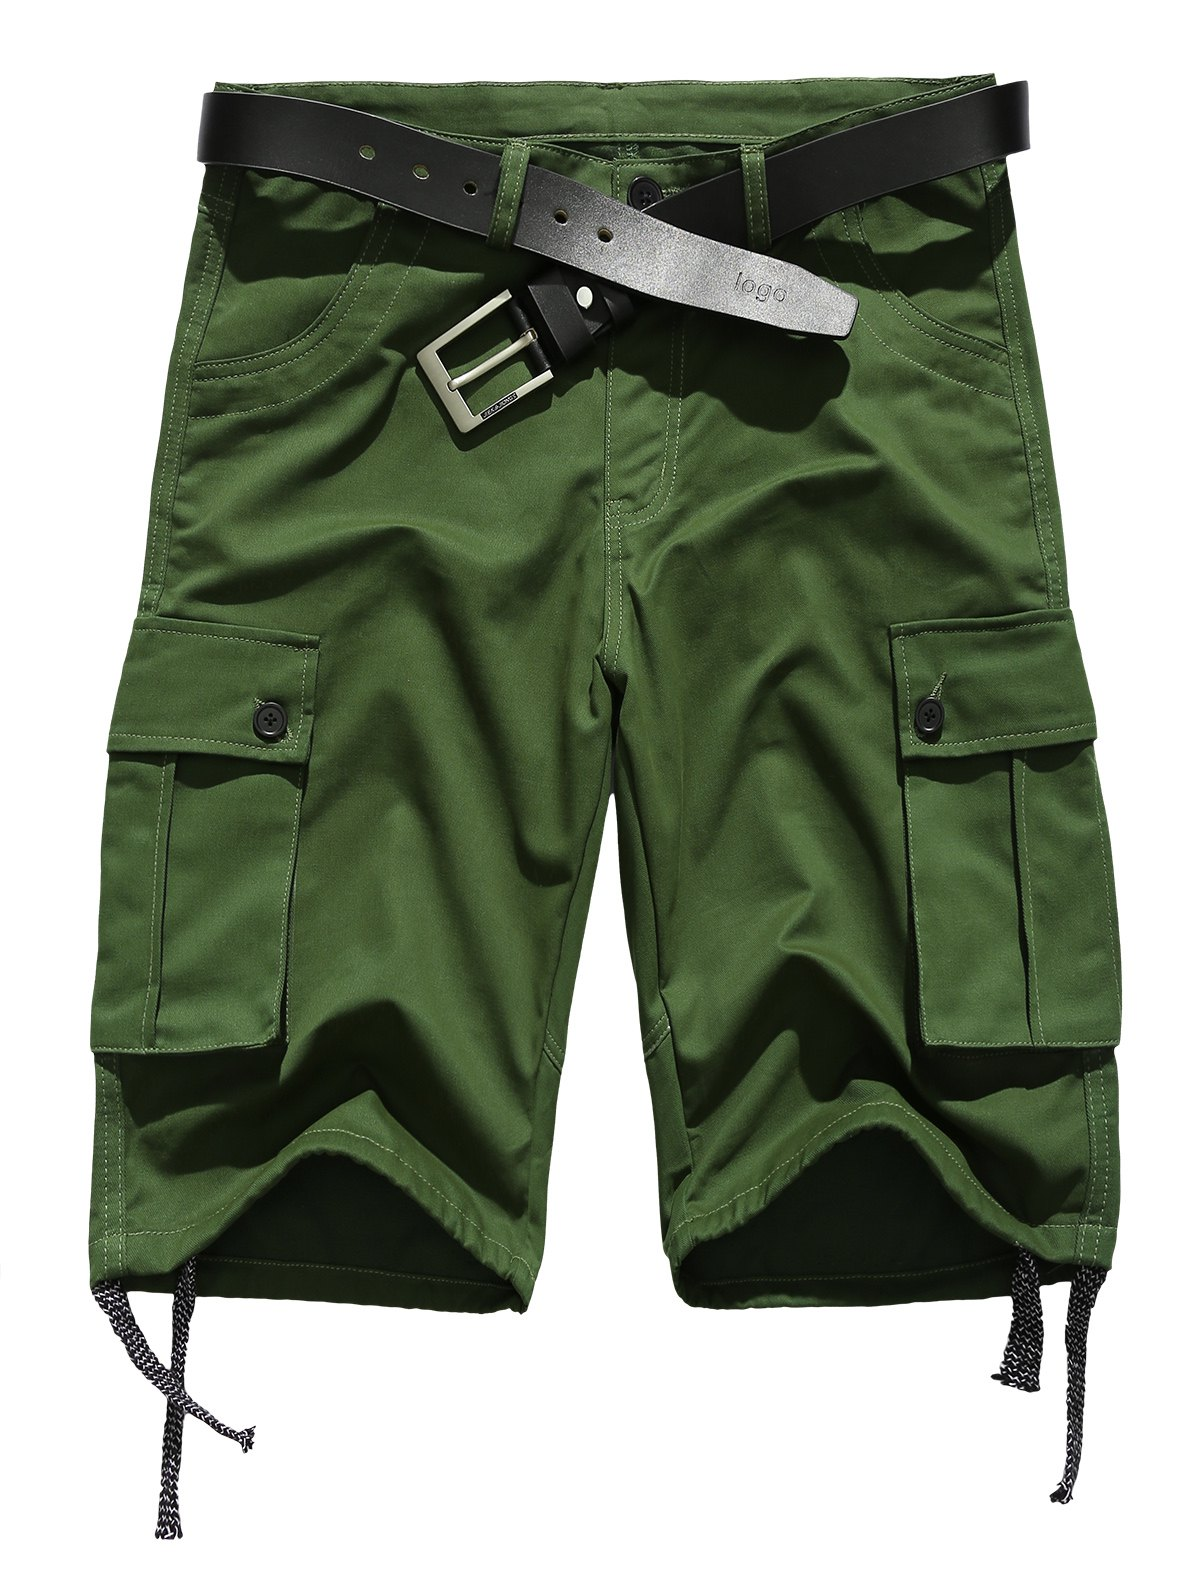 Pockets Embellished Zipper Fly Straight Leg Drawstring Design Shorts - ARMY GREEN M